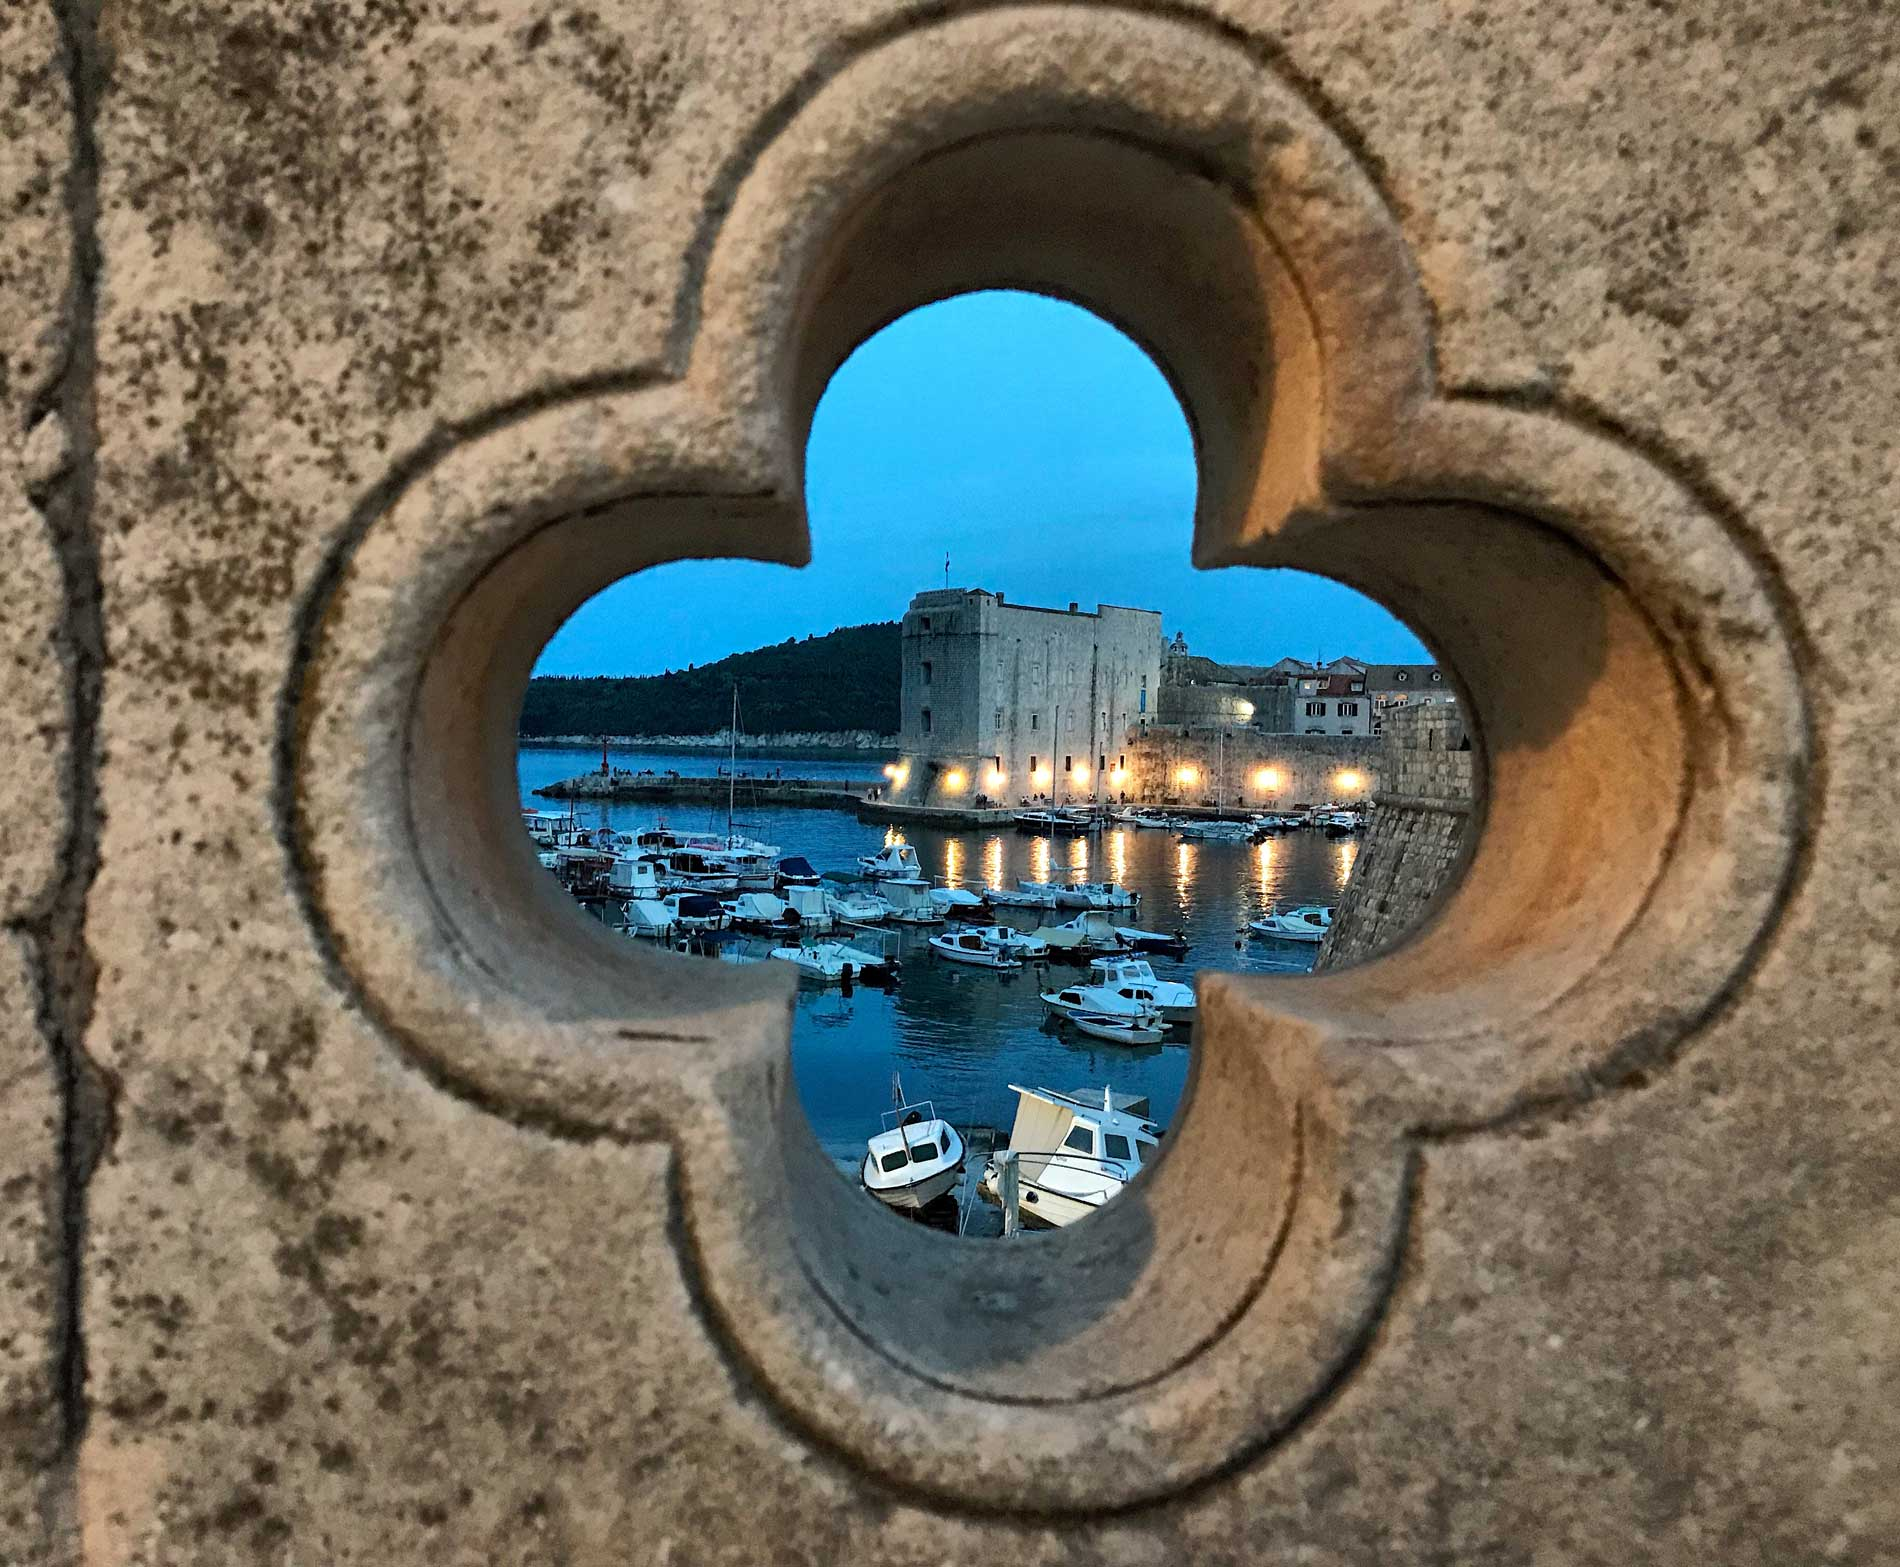 Dubrovnik-Croazia-barche-fortezza-san-Giovanni-ora-blu-seeing-through